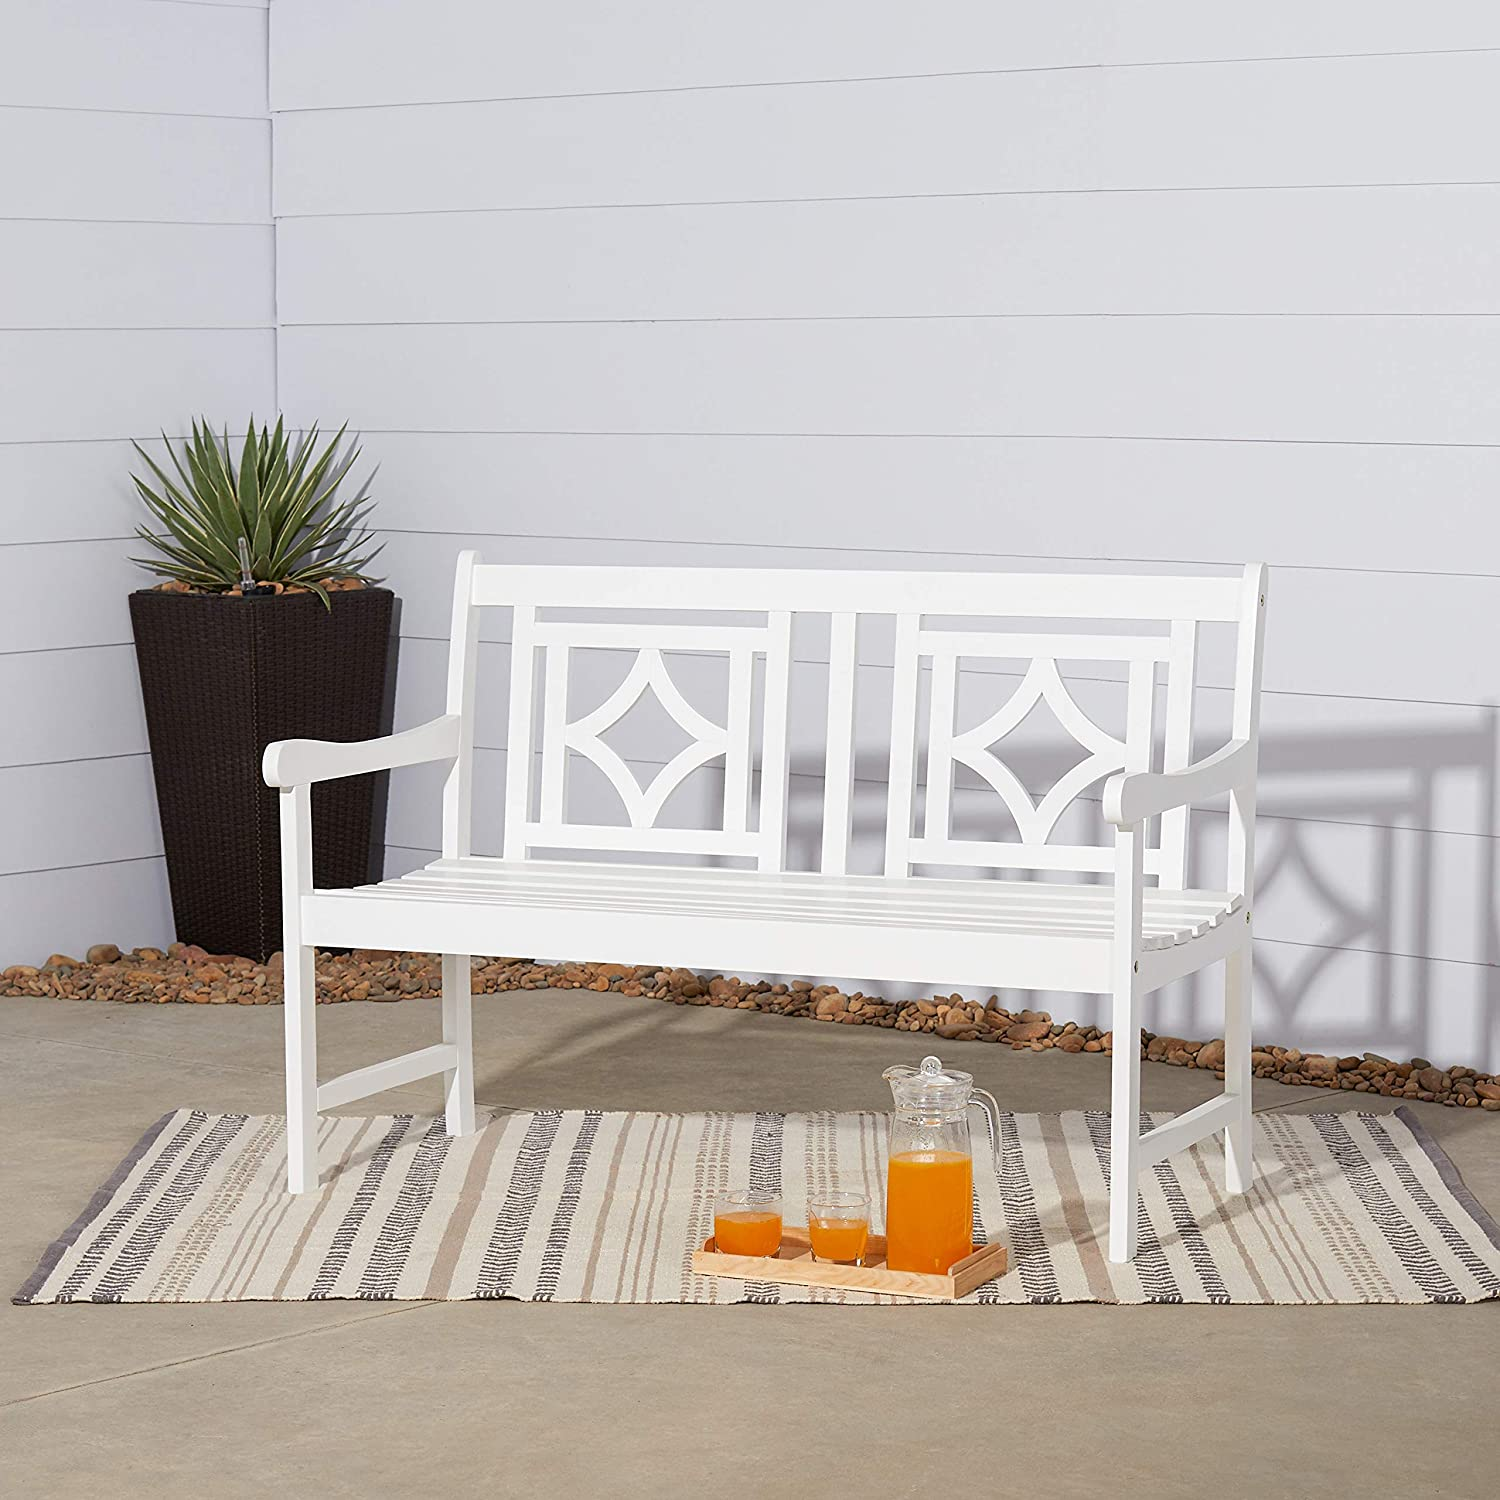 VIFAH V1830 Versailles White-Painted 4Ft Diamond Acacia Wood Bench for 2 Seater in Entry Way, Porch, Balcony, Deck, Garden, Patio, Backyard, Outdoor Seating, 400 lbs Capacity, 48 Inches, 4 Ft